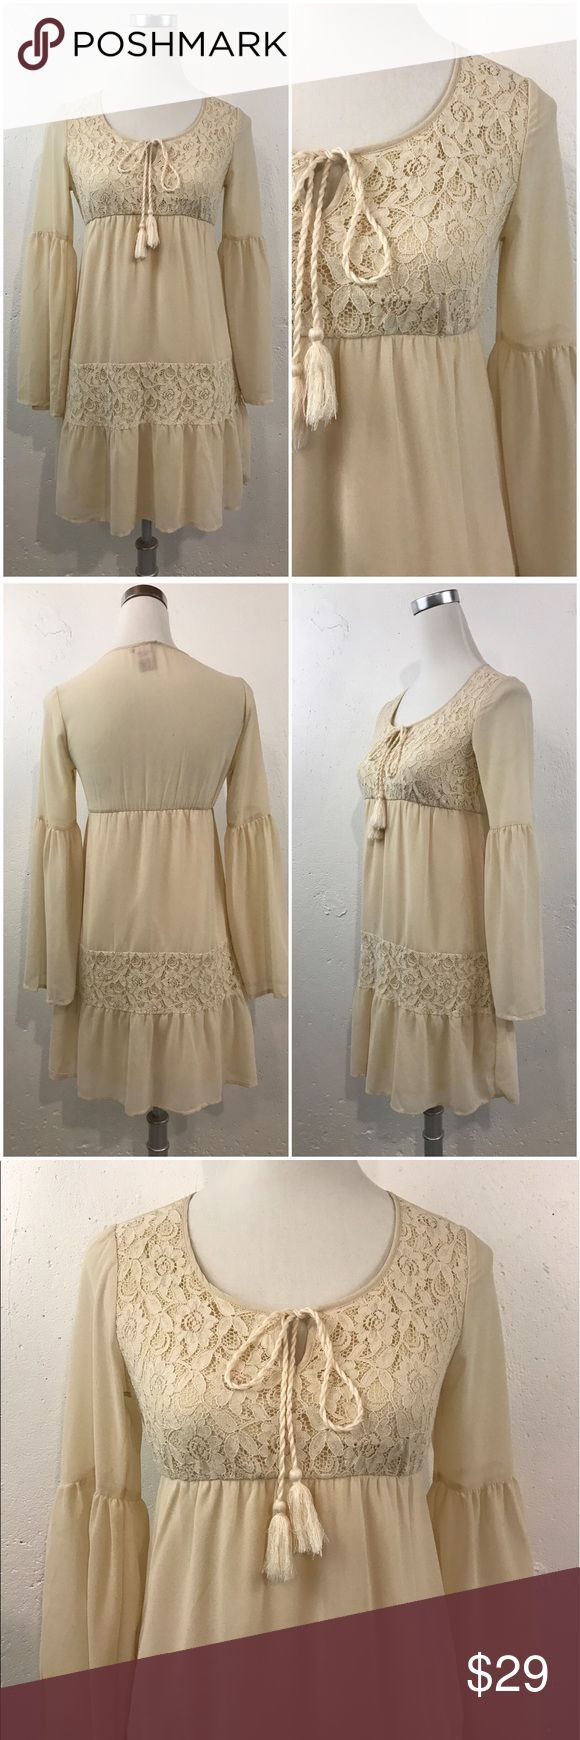 """<Flying Tomato> Cream Boho Bell Sleeve Dress Beautiful bohemian-festival style dress! The waist is elastic. Armpit to armpit 15"""", waist 12"""" with stretch to about 17"""", hips approx. 17"""" flat, length 32"""". There is a small discoloration on one shoulder. This dress is lined and the material is a chiffon polyester. Flying Tomato Dresses Mini"""